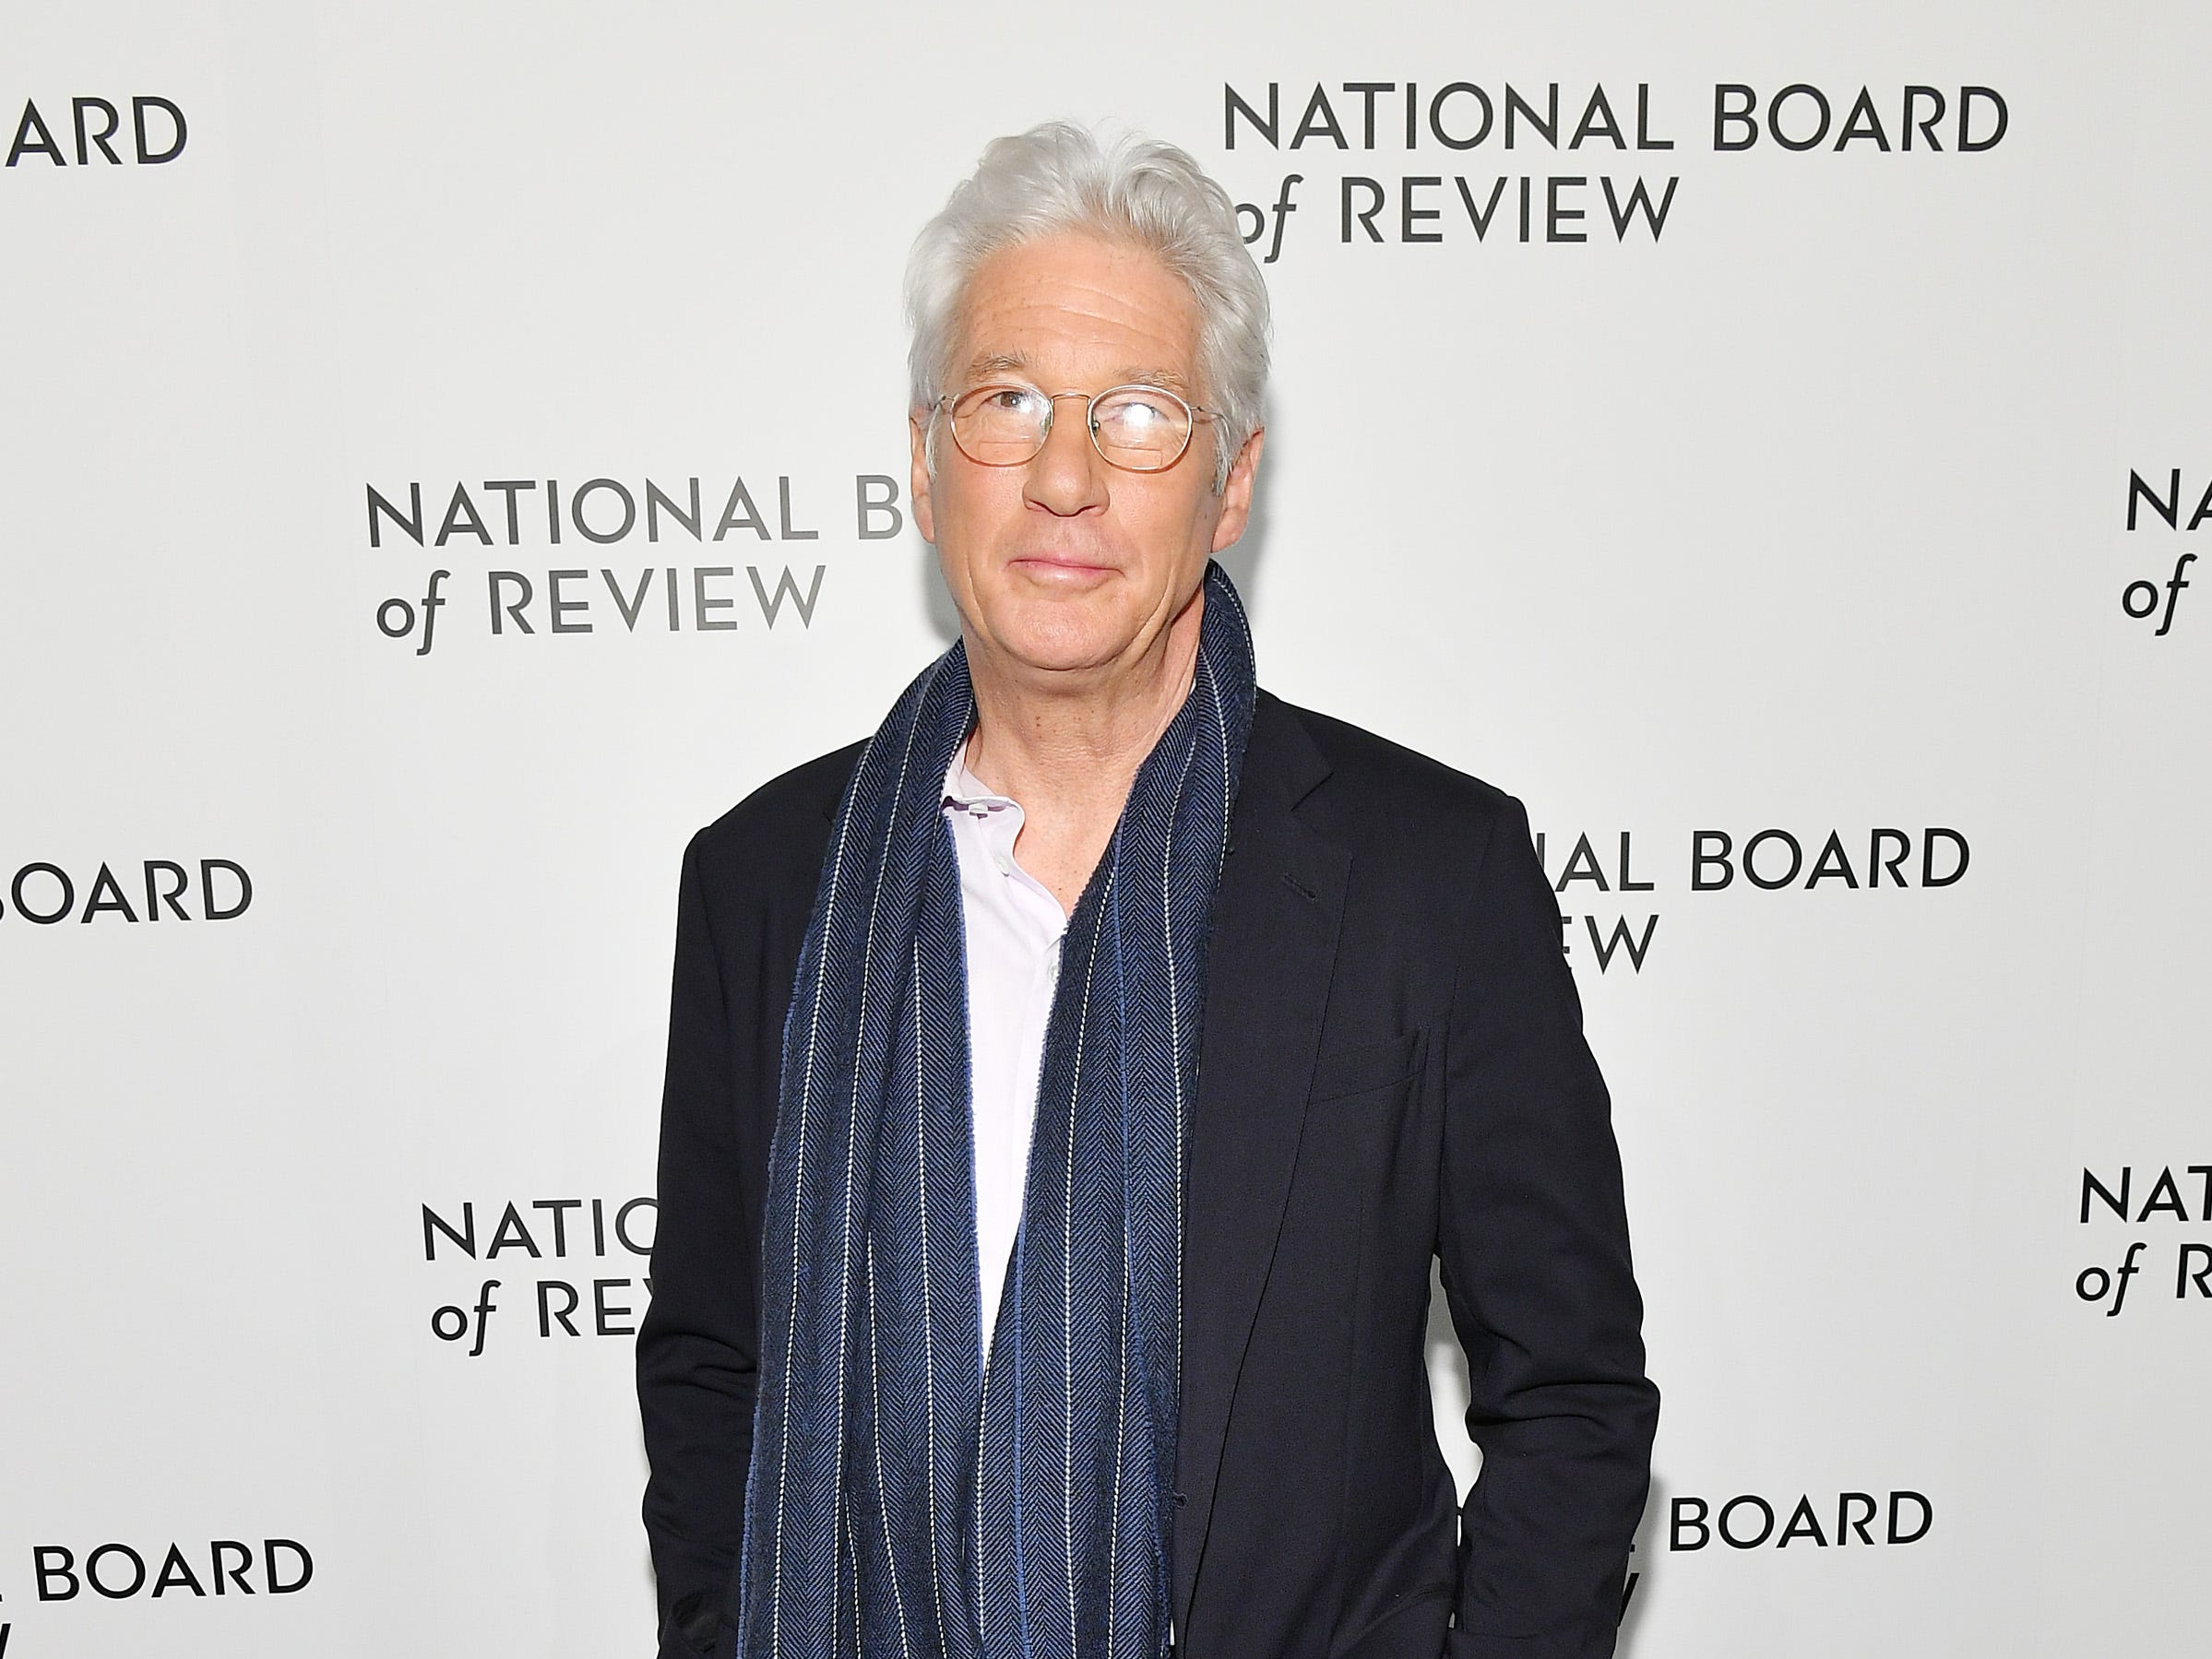 NEW YORK, NY - JANUARY 08:  Richard Gere attends The National Board of Review Annual Awards Gala at Cipriani 42nd Street on January 8, 2019 in New York City.  (Photo by Dia Dipasupil/Getty Images for National Board of Review) ORG XMIT: 775259363 ORIG FILE ID: 1079454178